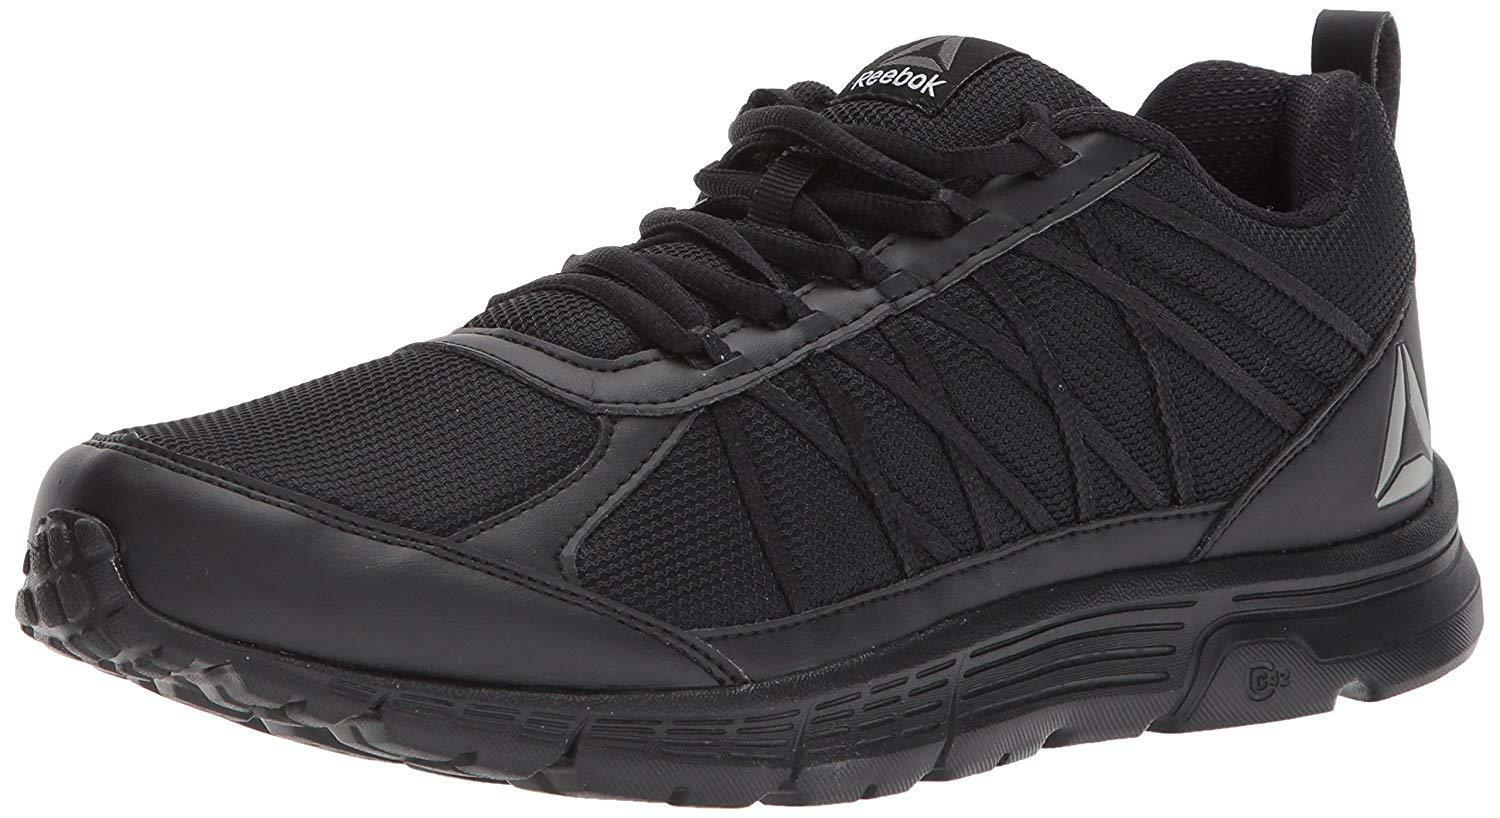 check out f13fe 2e2be Reebok Men s Speedlux 2.0 Sneaker. Skechers Equalizer 2.0- Lodini Training  shoes ...